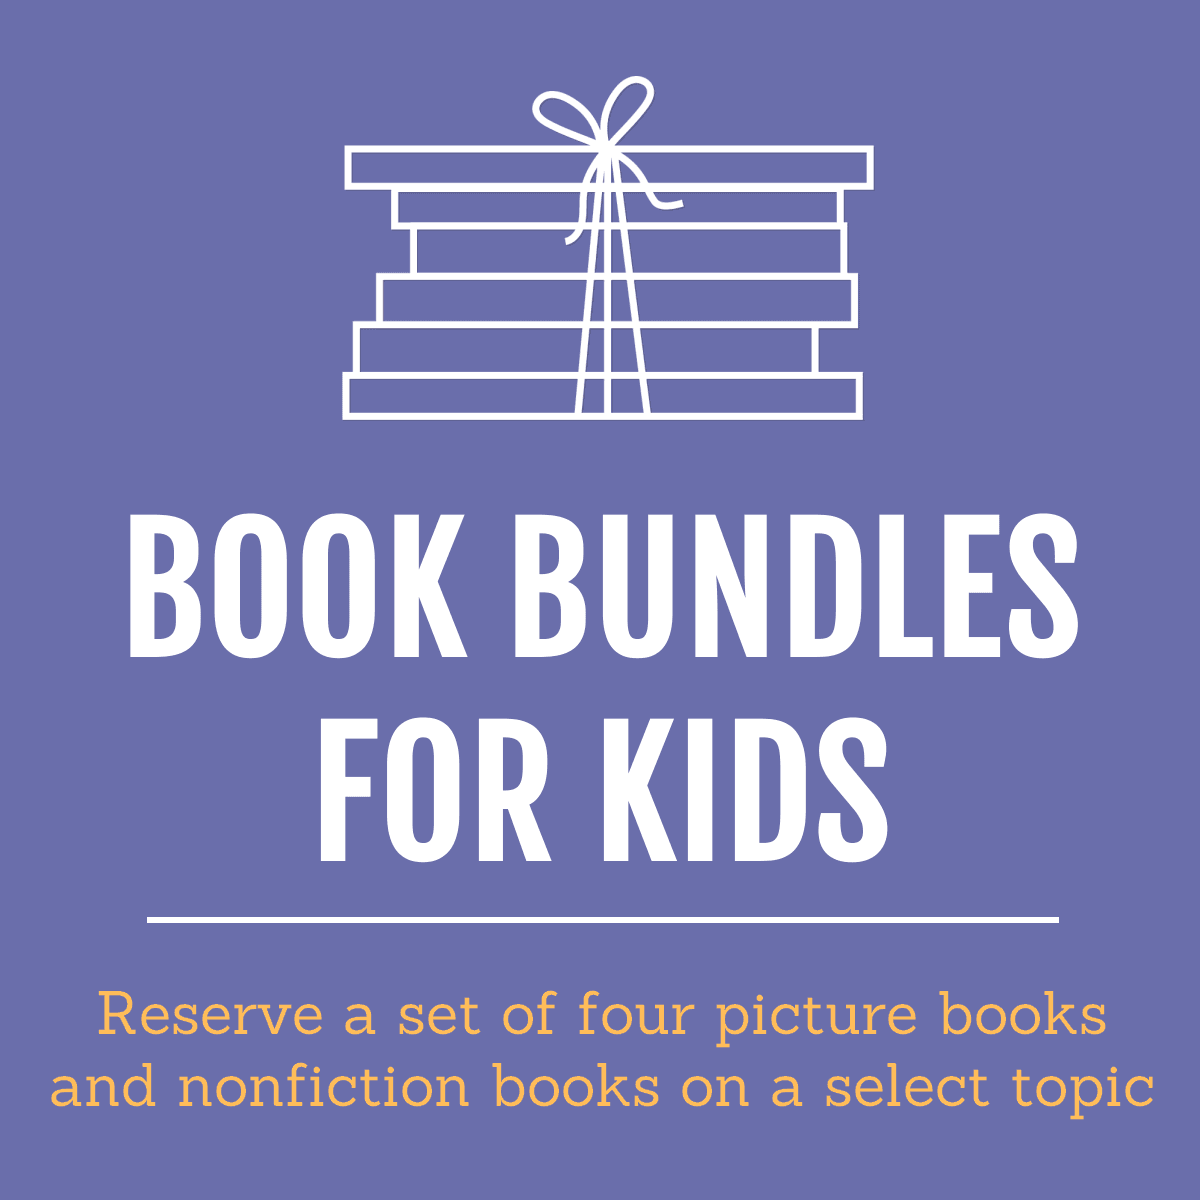 Book Bundles for Kids 2